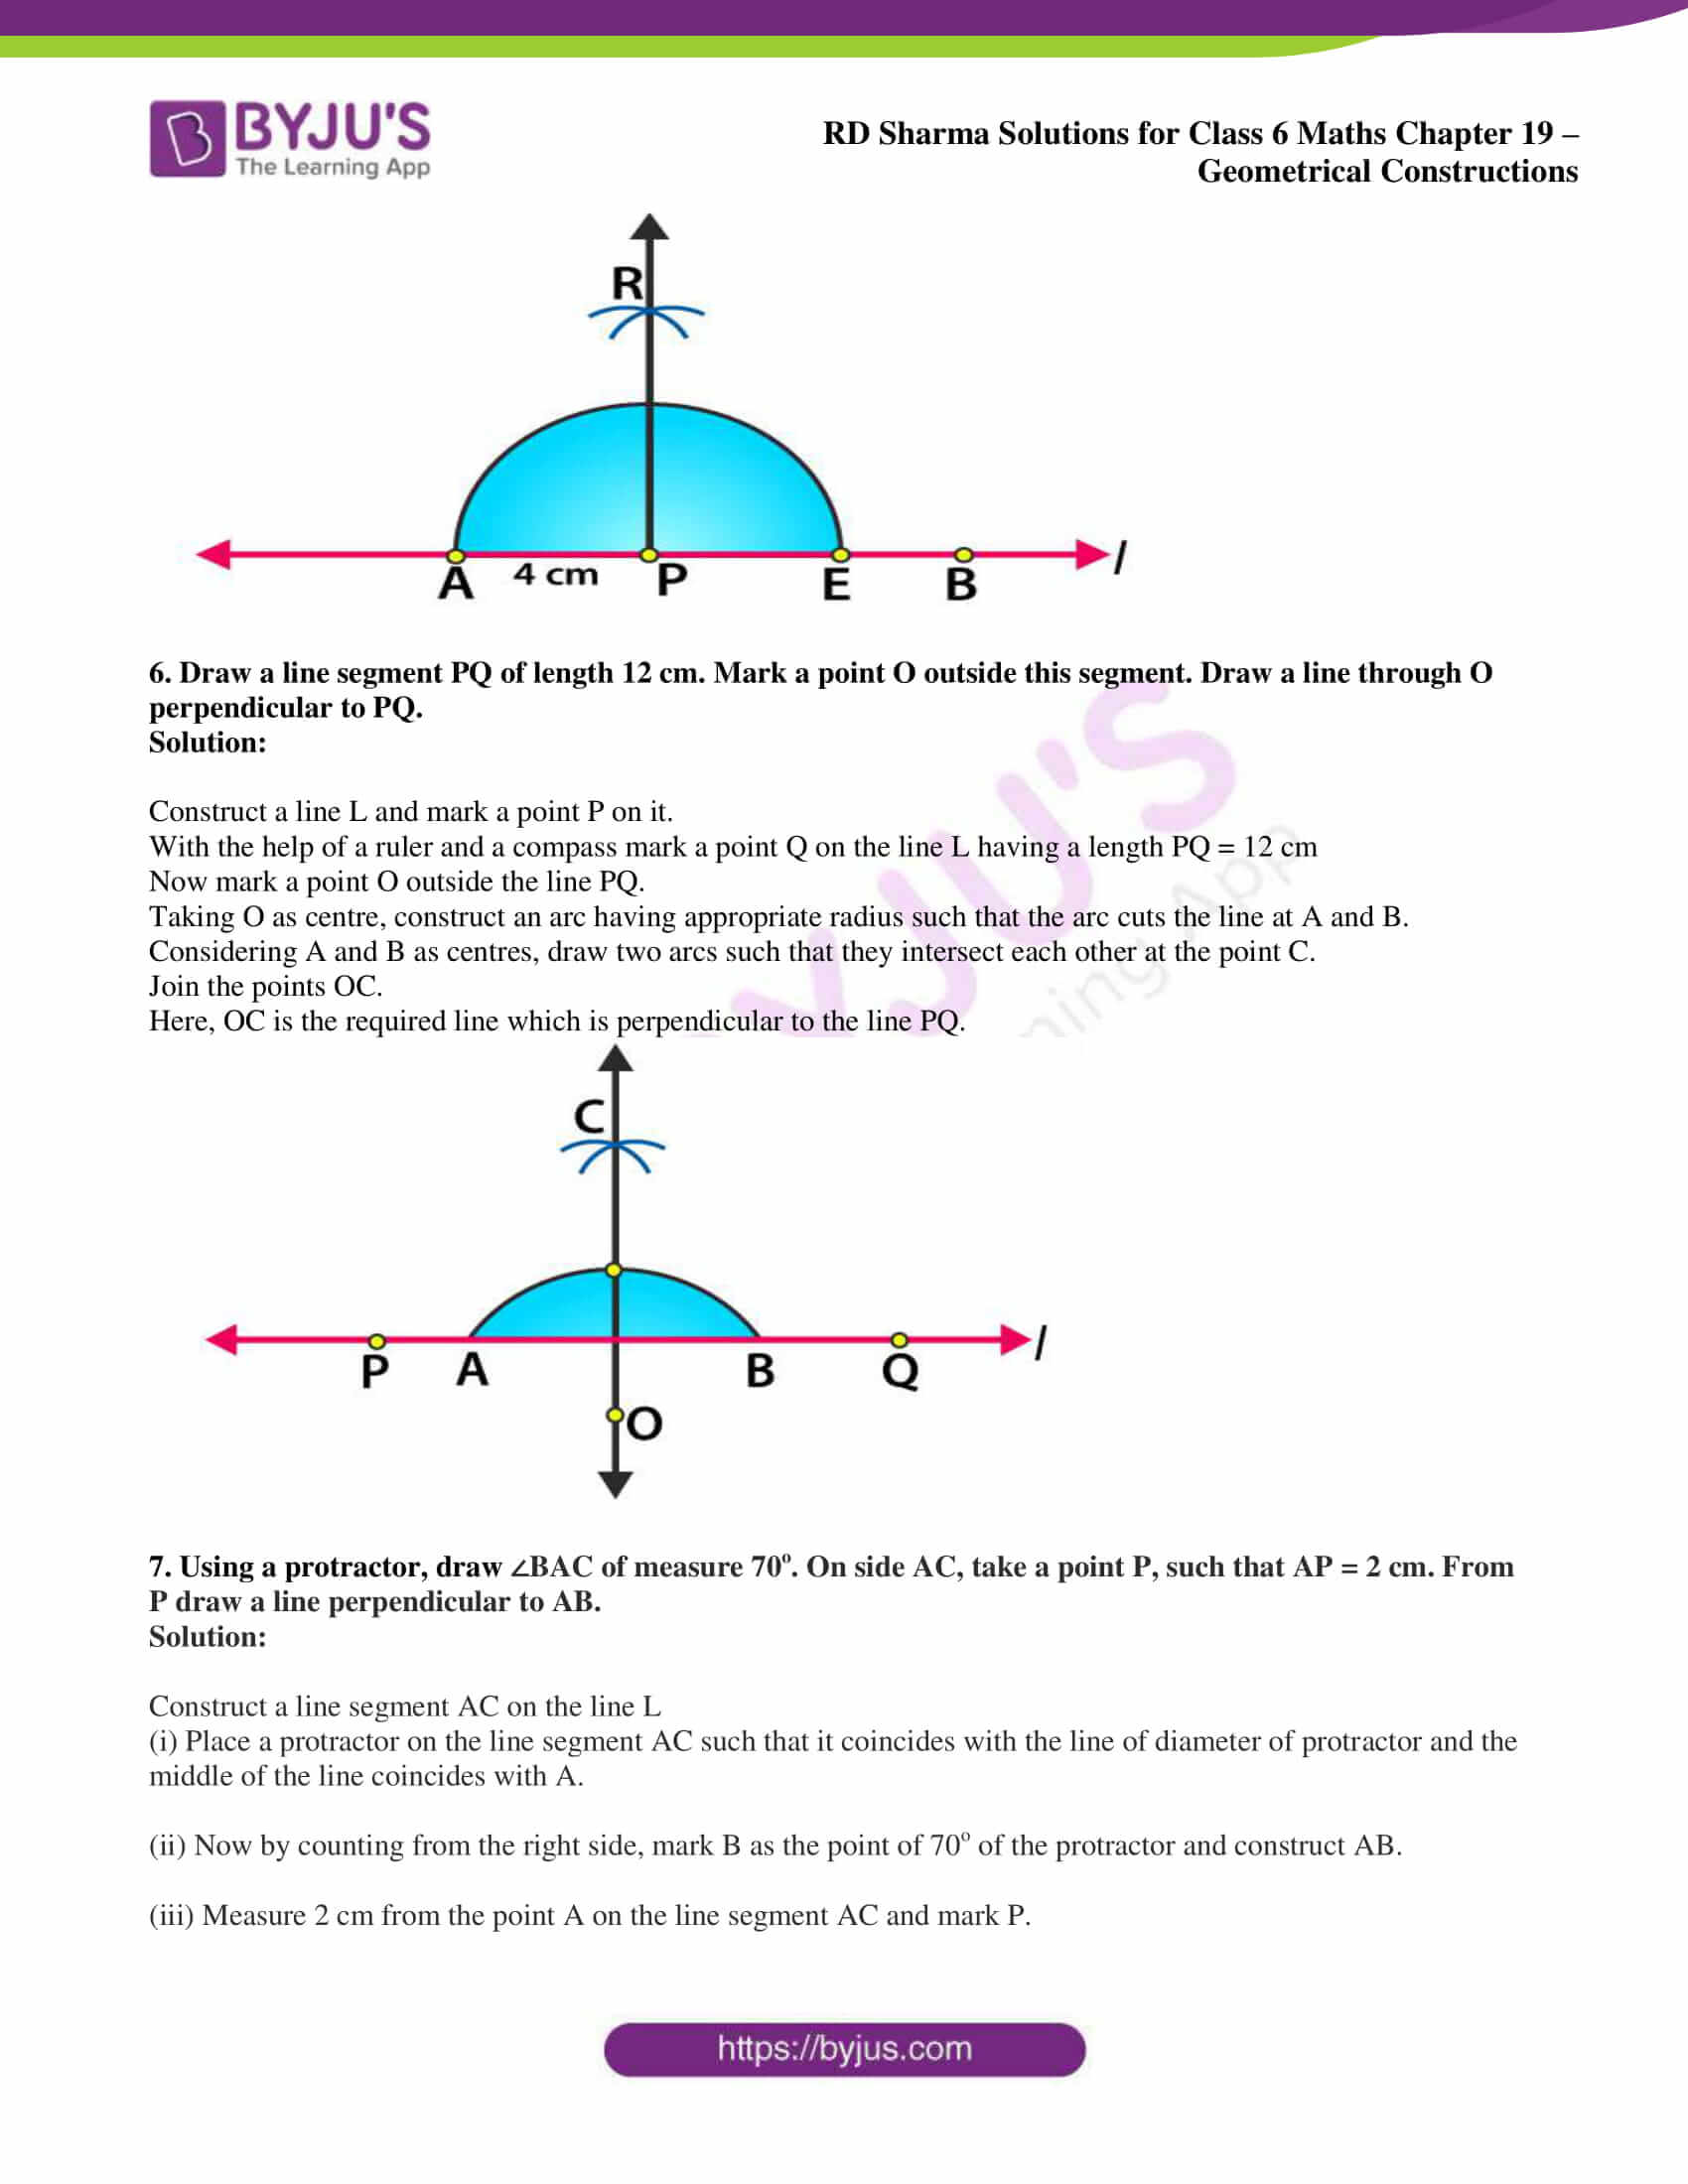 rd sharma solutions nov2020 class 6 maths chapter 19 exercise 2 6